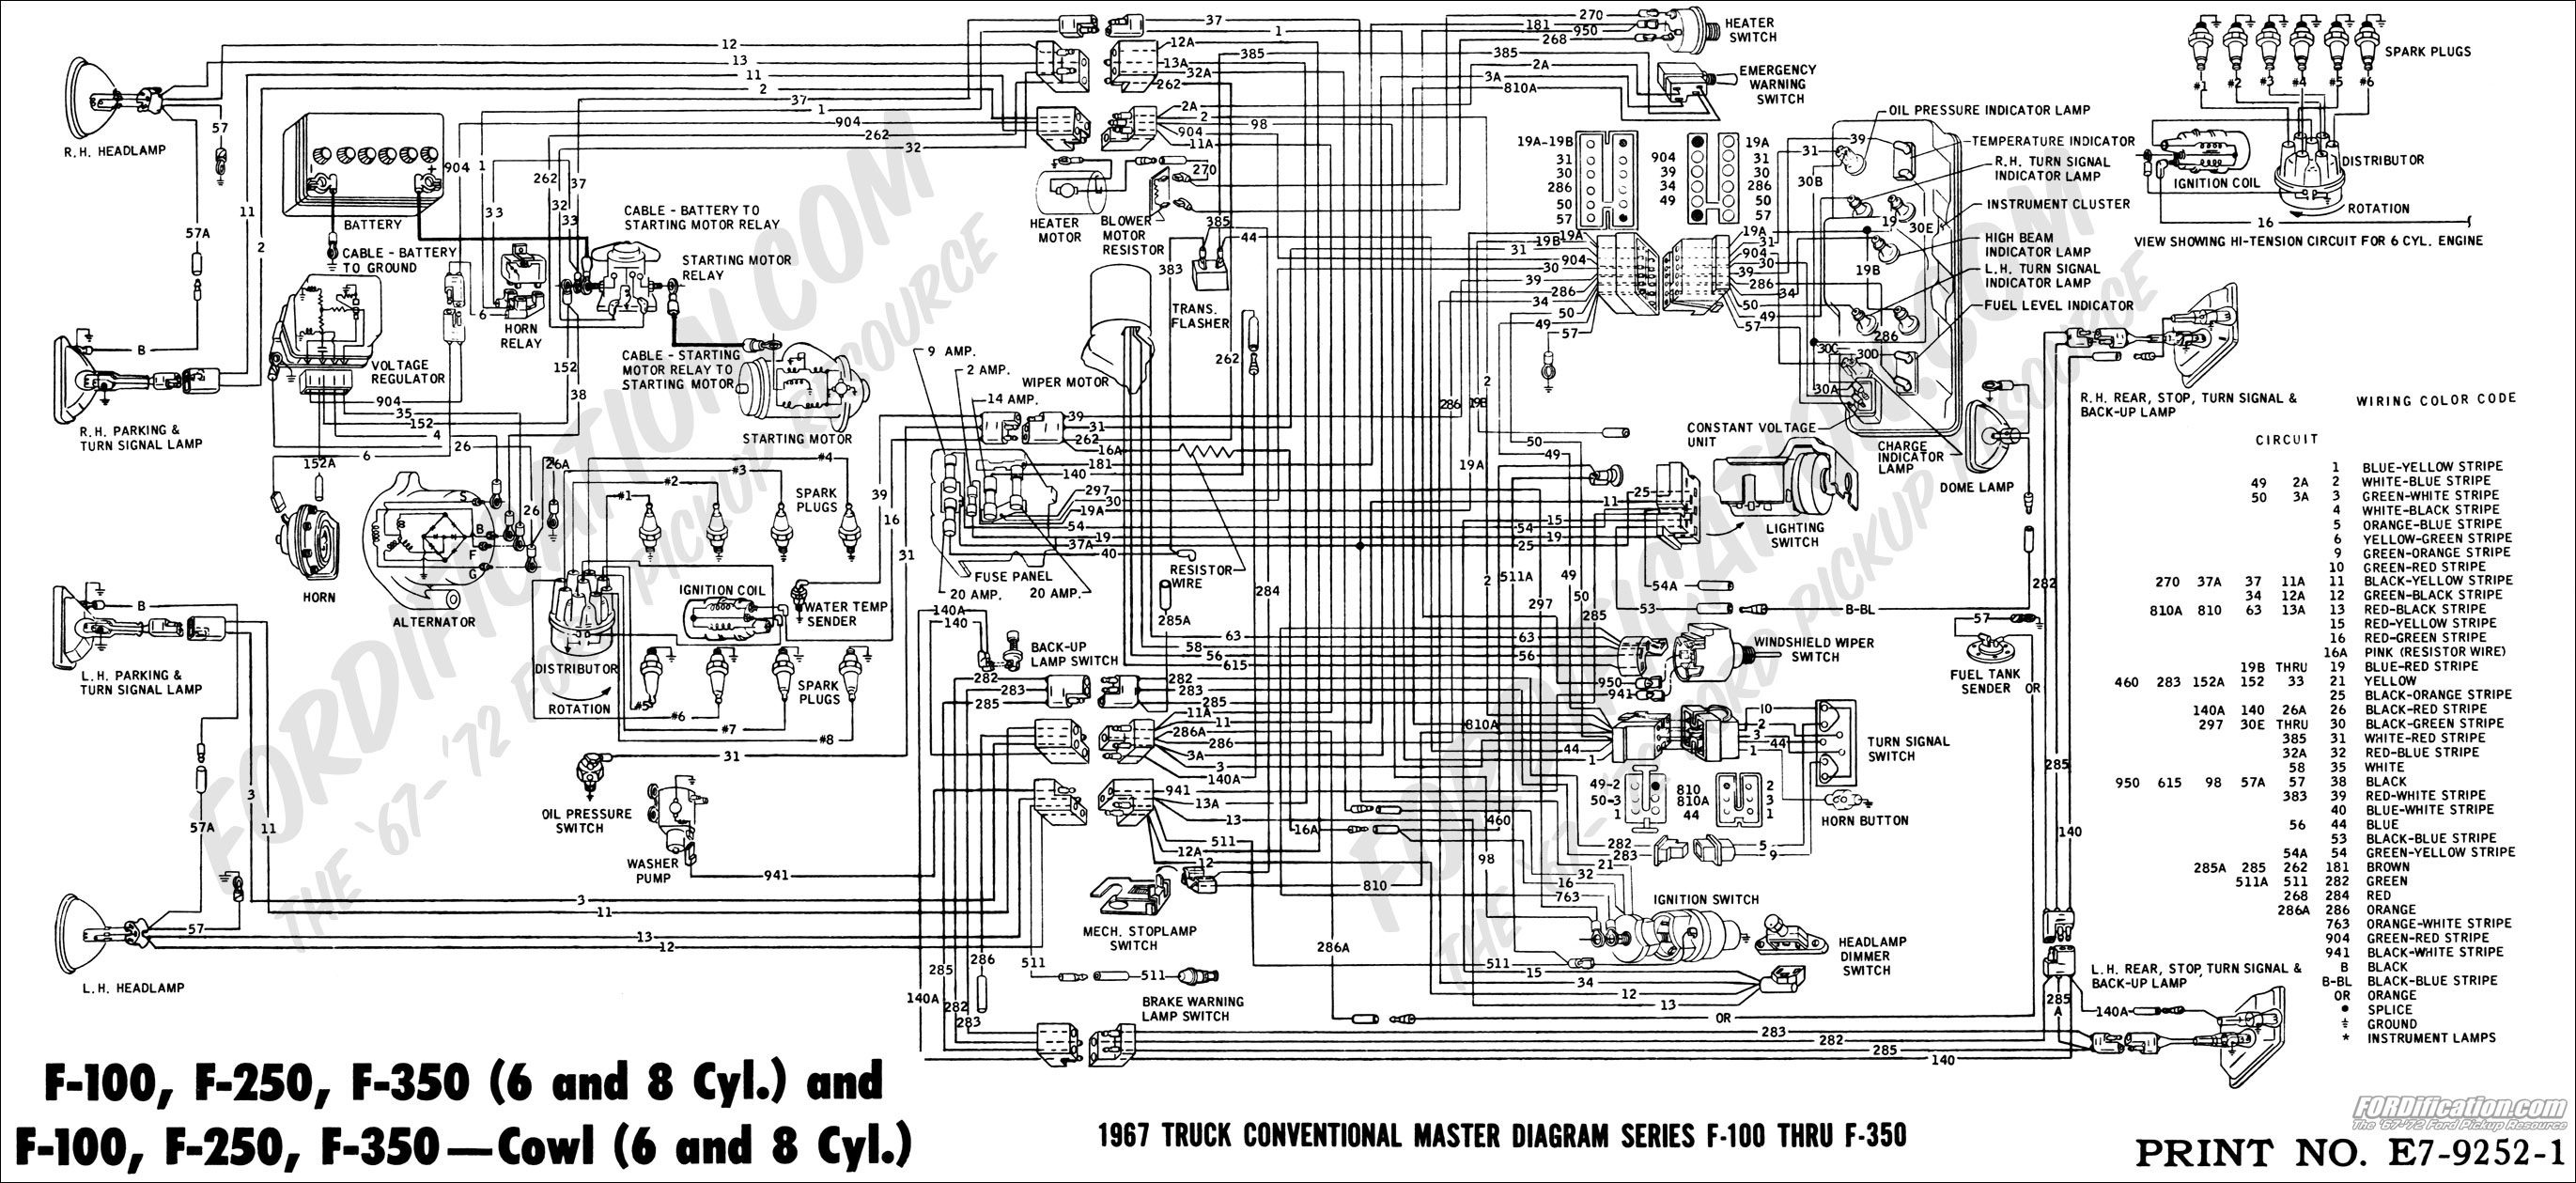 Ford e 350 wiring diagrams kelights electric bike controller on free 1990 ford e350 wiring diagram 1989 Ford F-150 302 Manual Clutch Schematic 2003 Ford E350 Starter Wiring